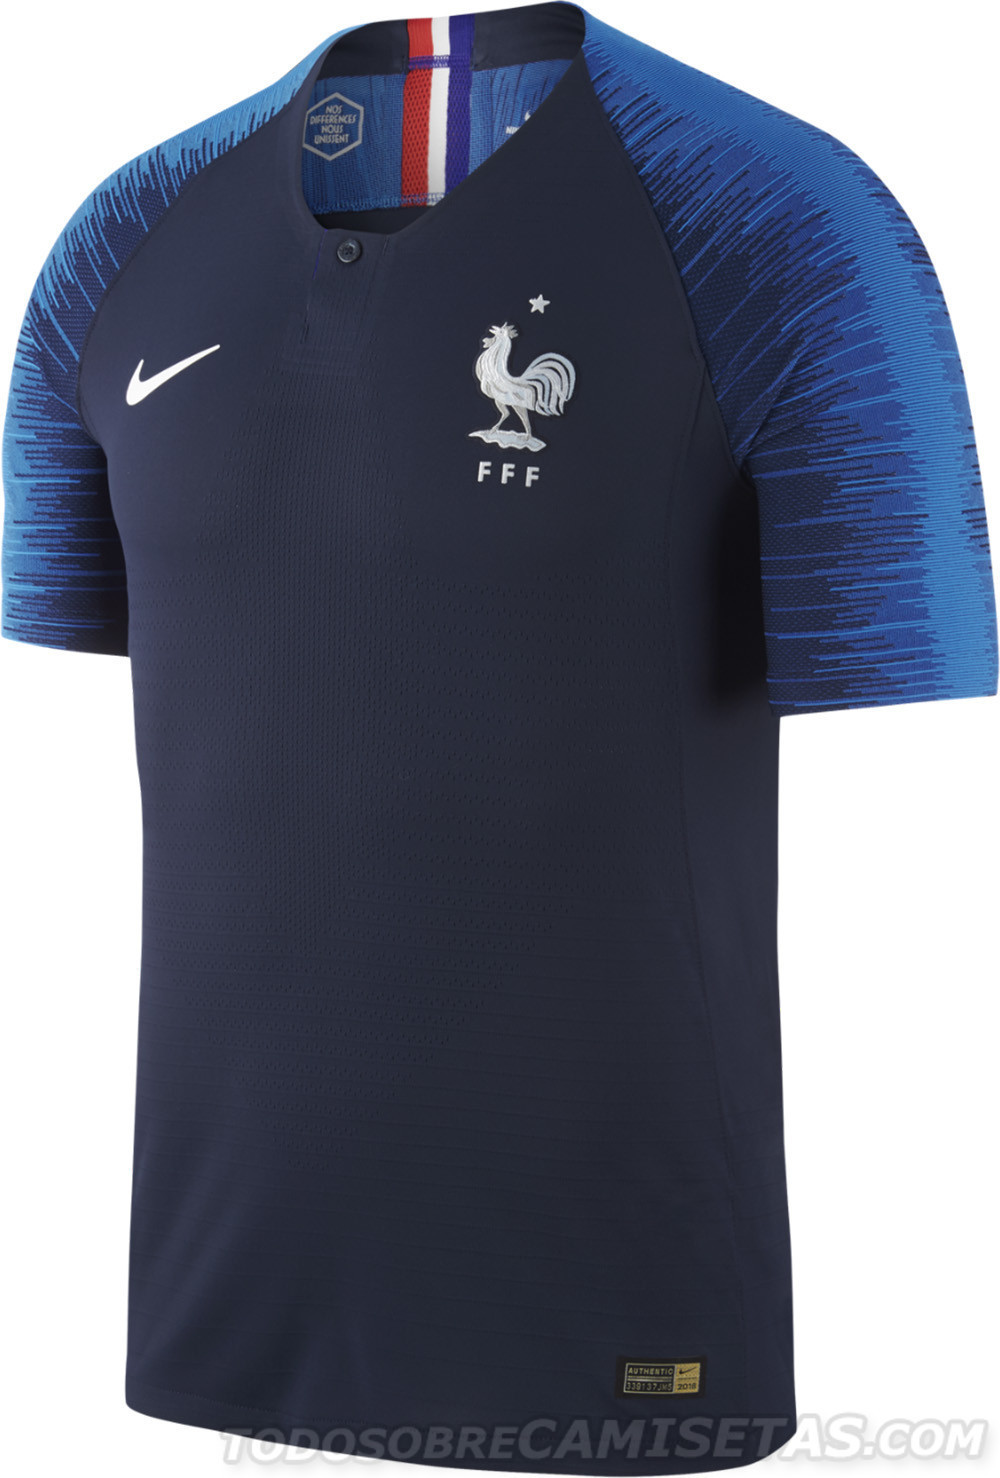 france-2018-world-cup-kits-of-7.jpg